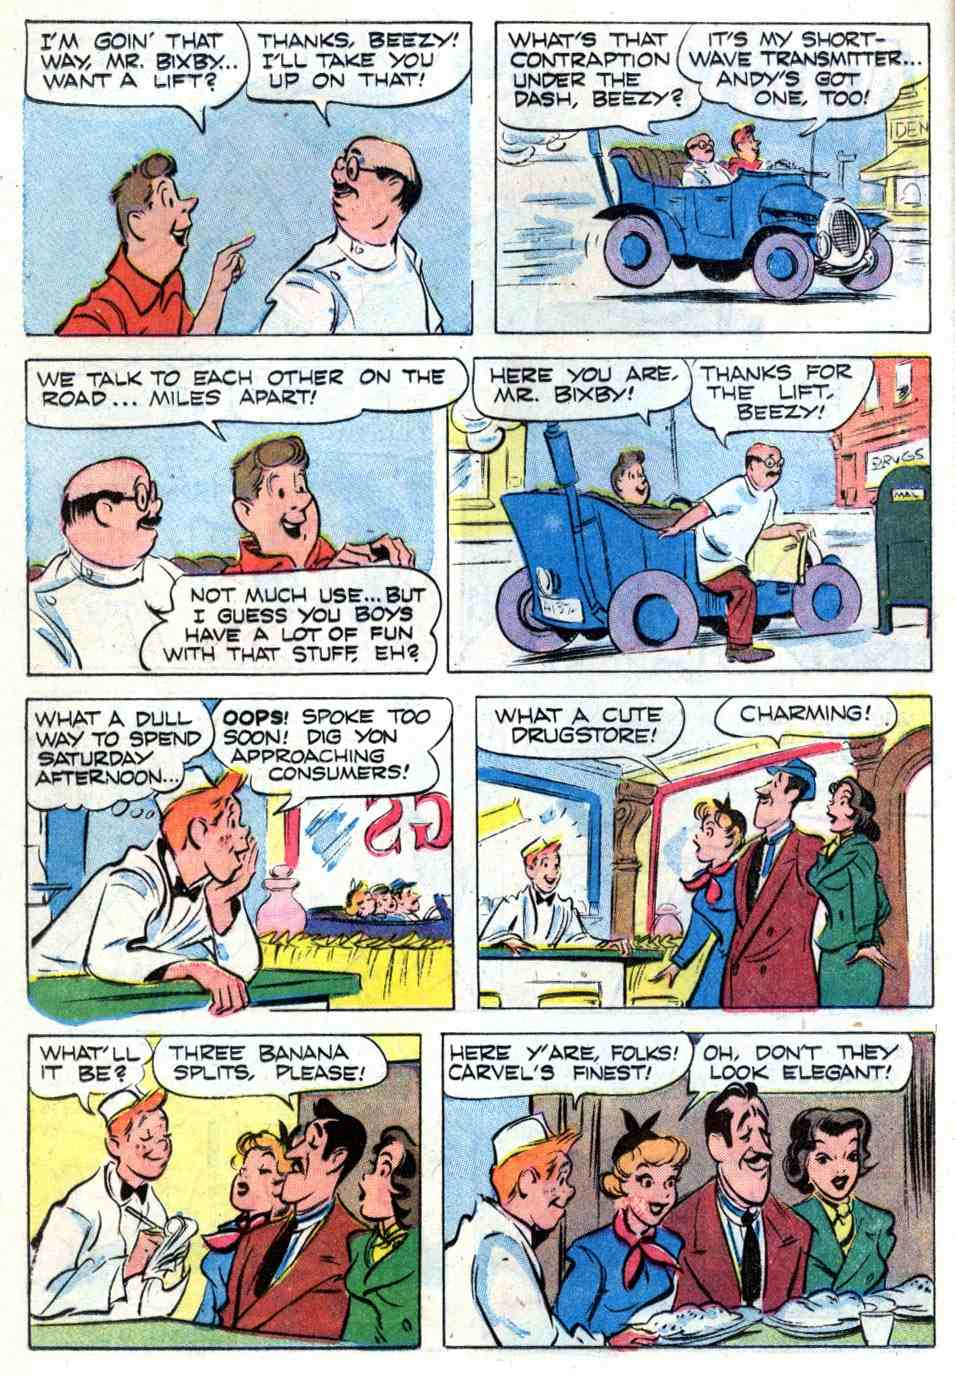 Andy-Hardy-Comic-Strips (16)